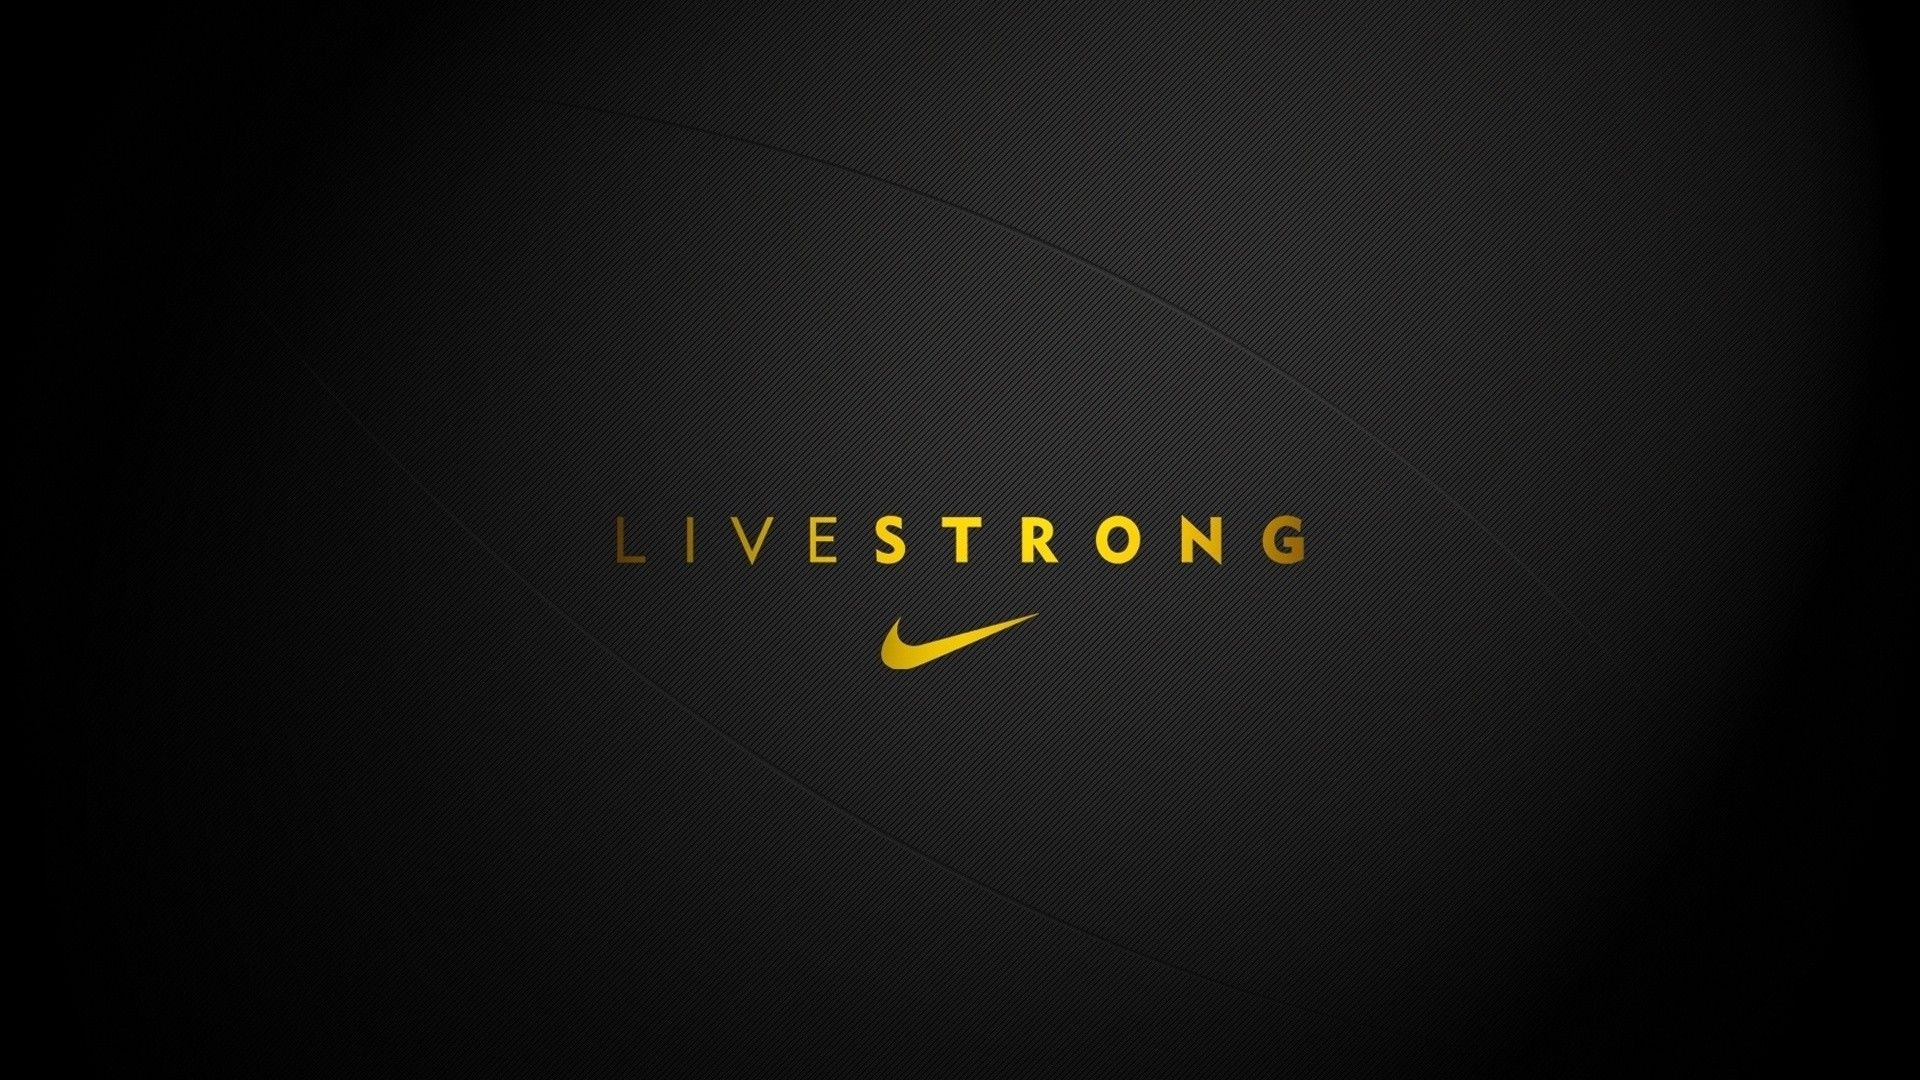 Logo Live Strong Wallpaper For Free